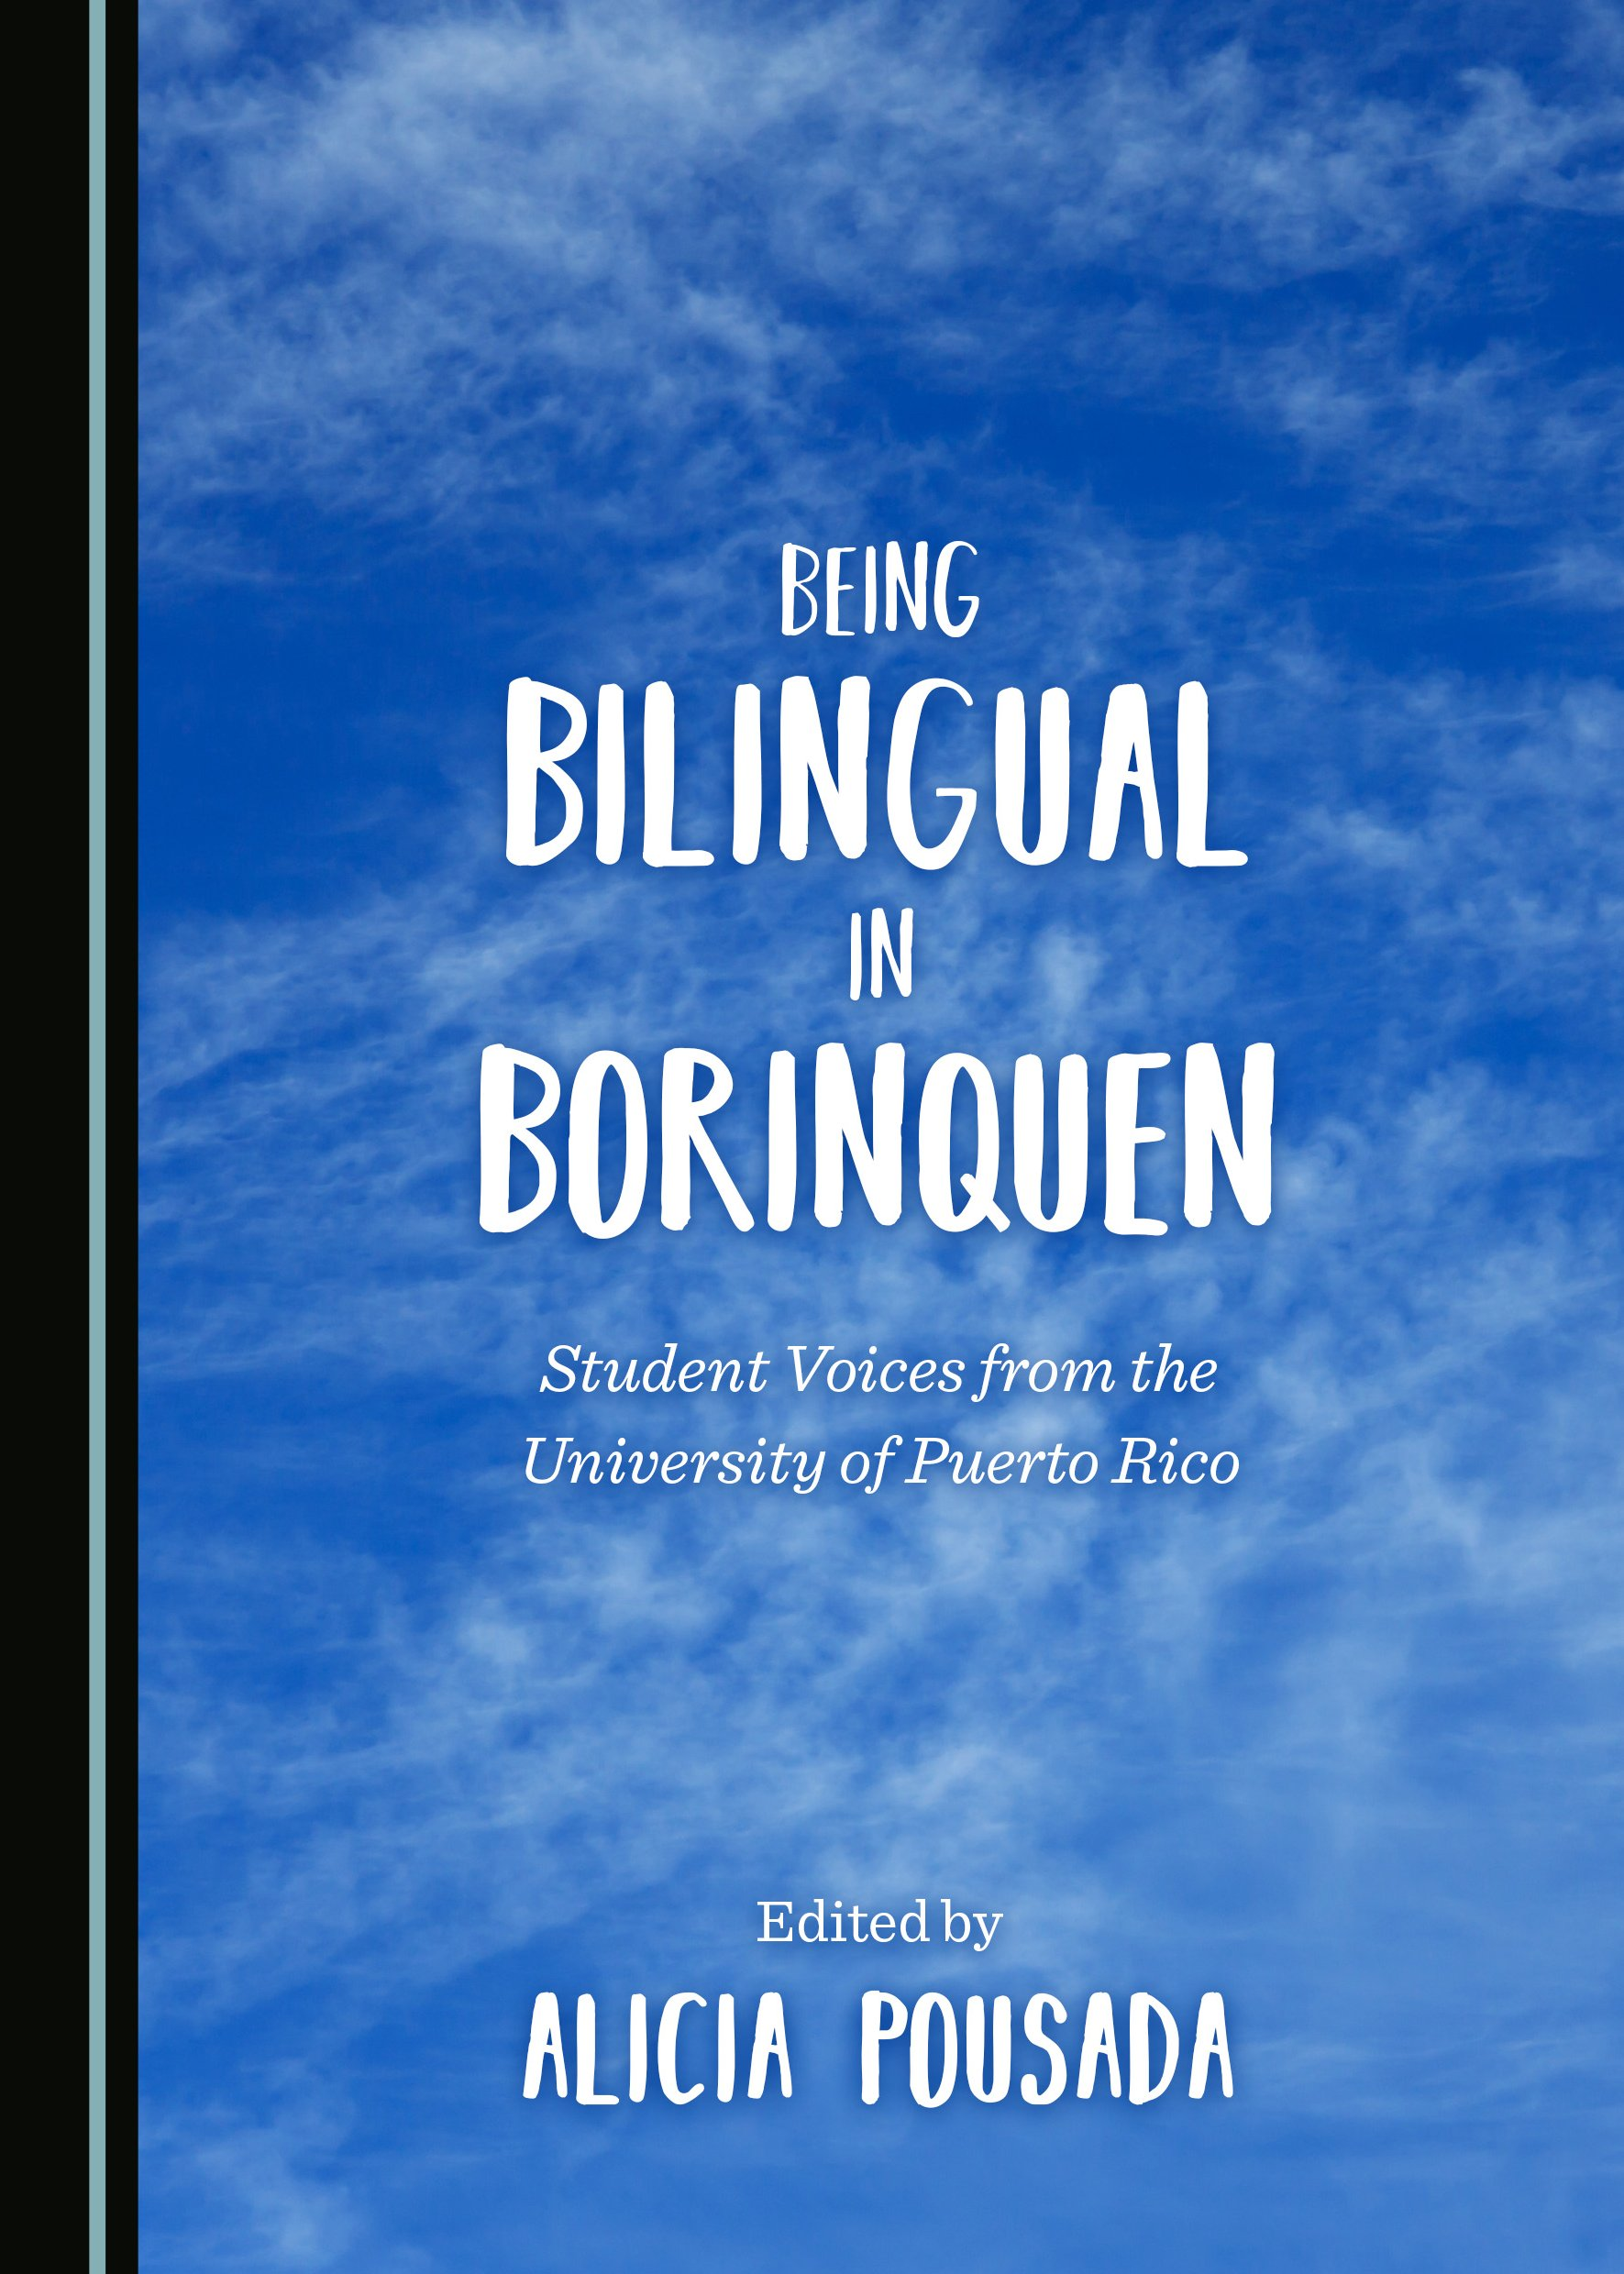 Being Bilingual in Borinquen: Student Voices from the University of Puerto Rico